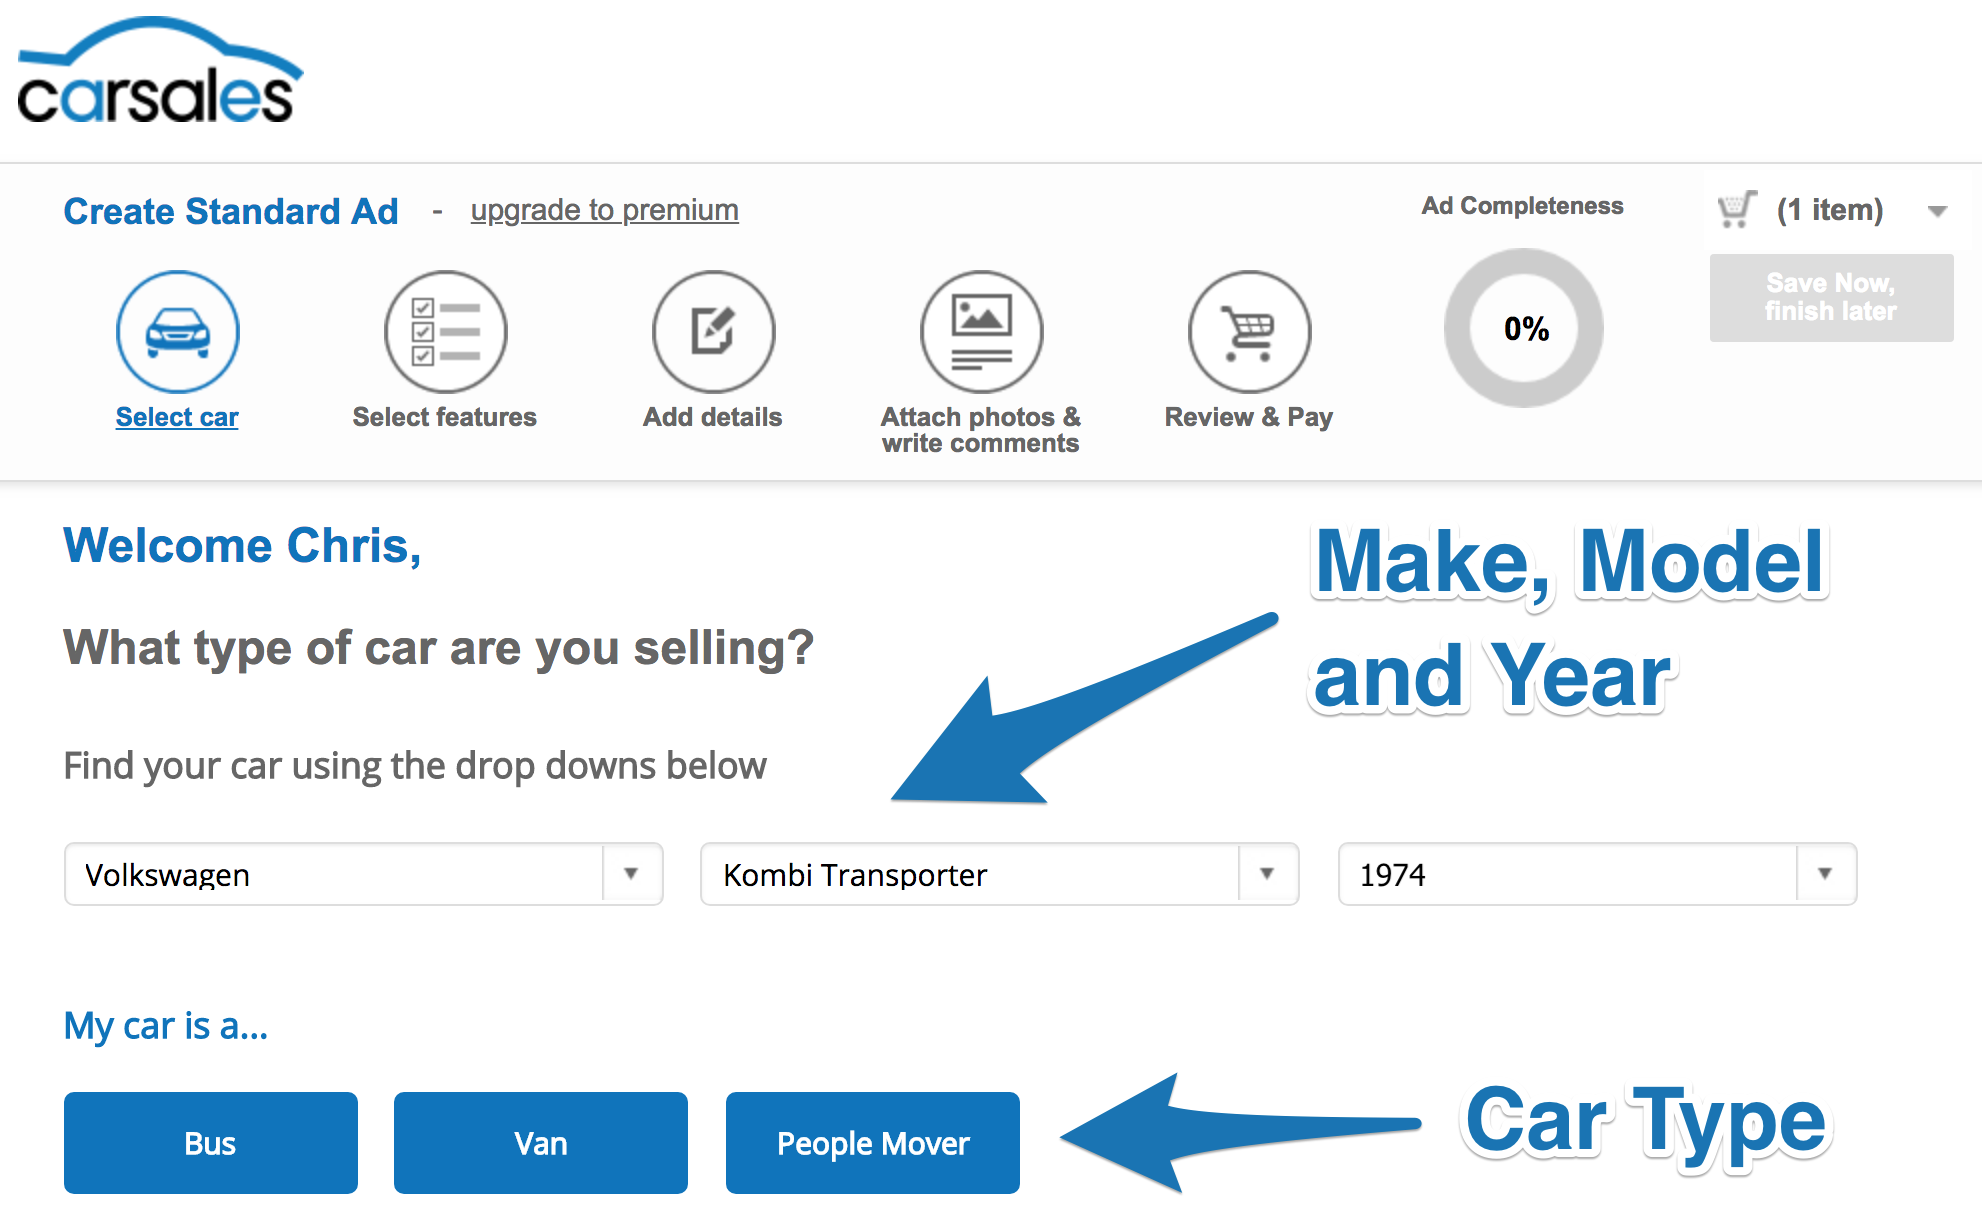 Screenshot showing a page on carsales